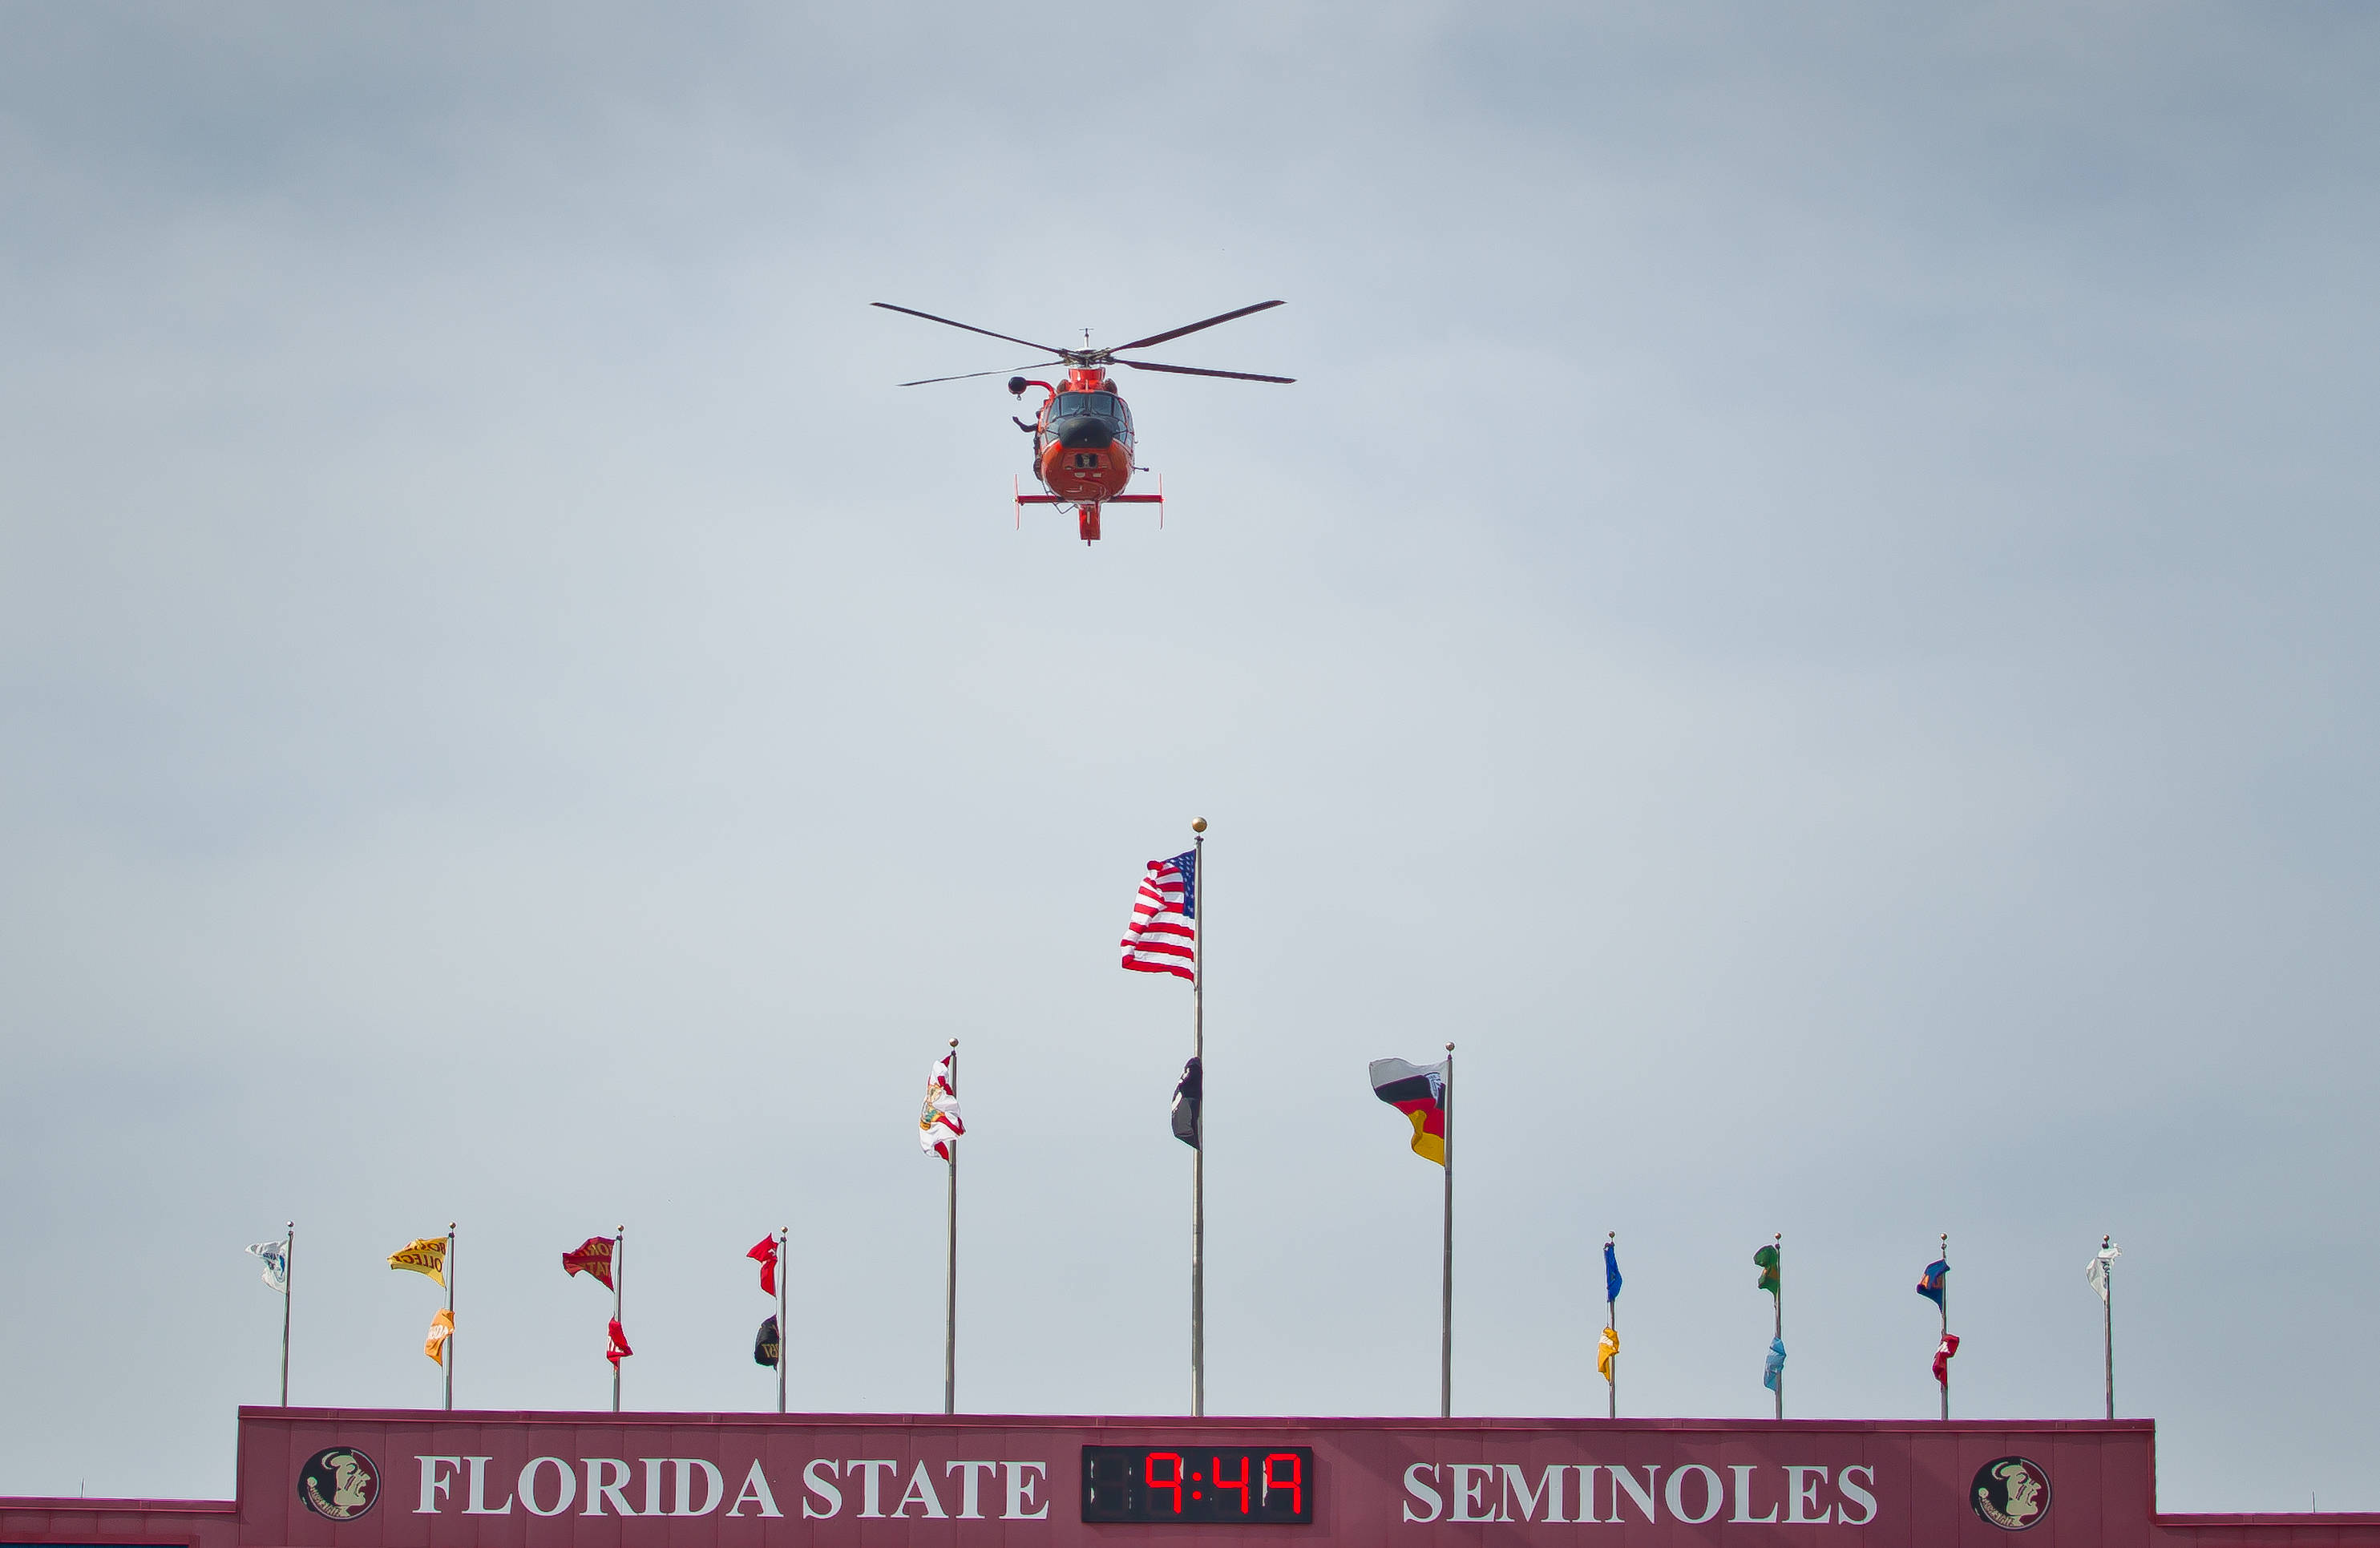 Coast Guard helicopter flyover